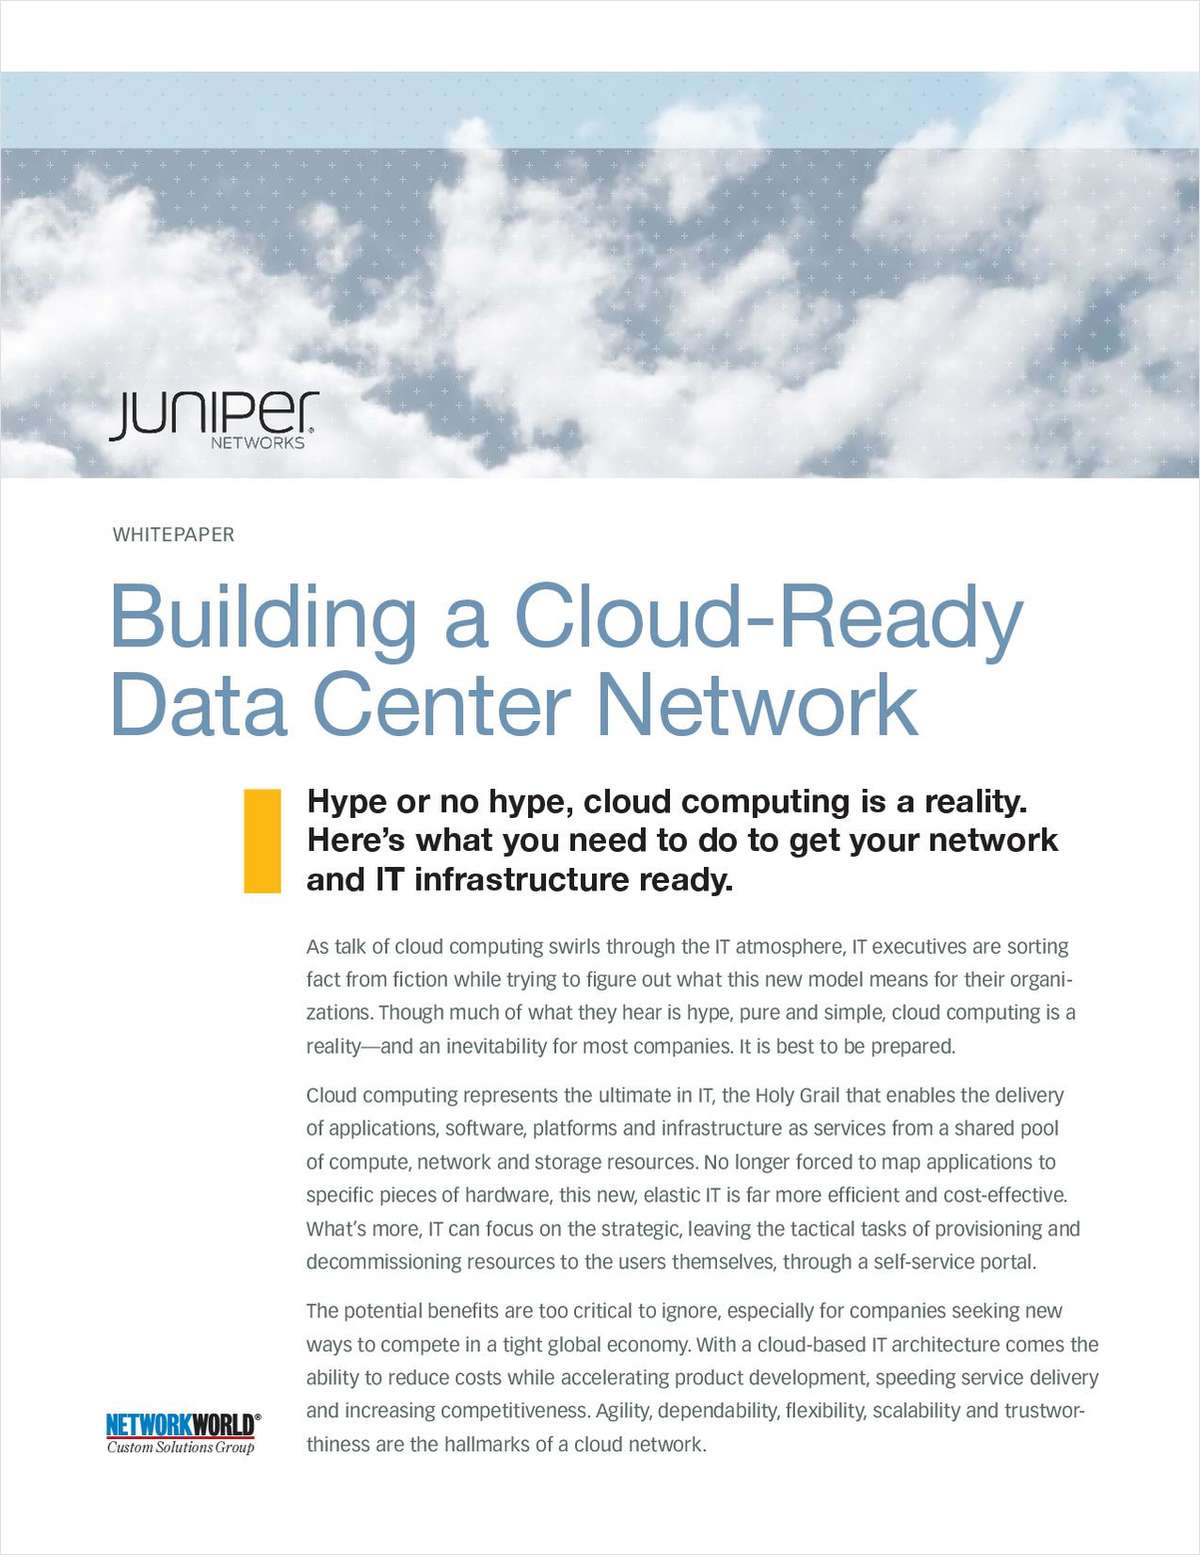 Building a Cloud-Ready Data Center